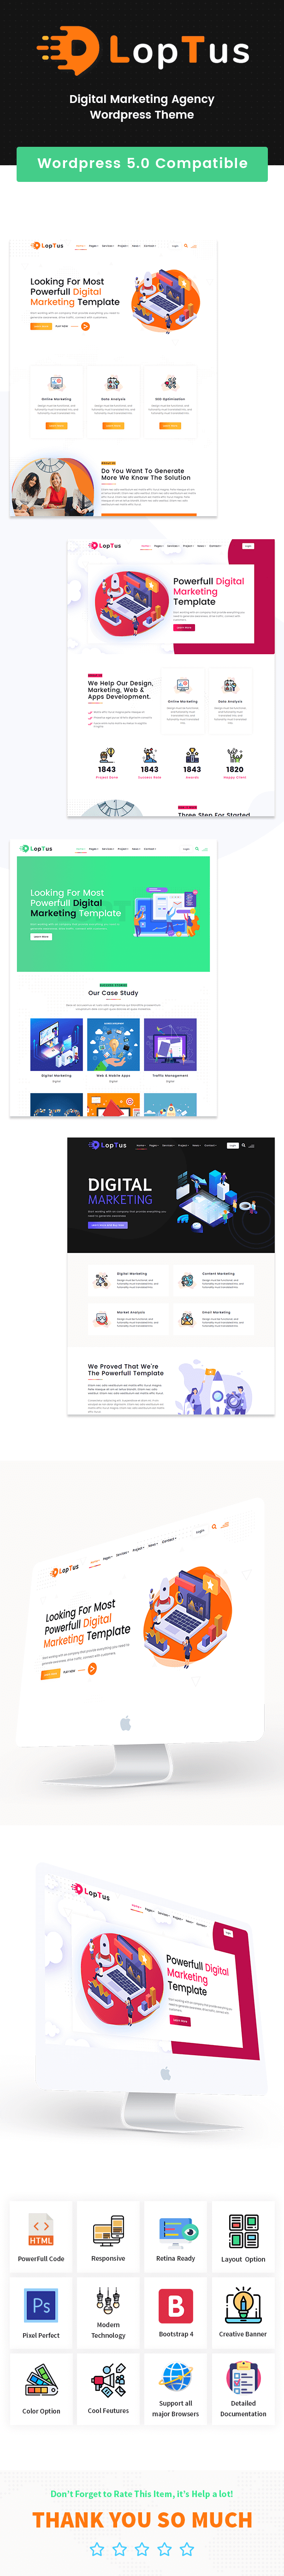 Loptus - Digital Marketing Agency WordPress Theme - 2